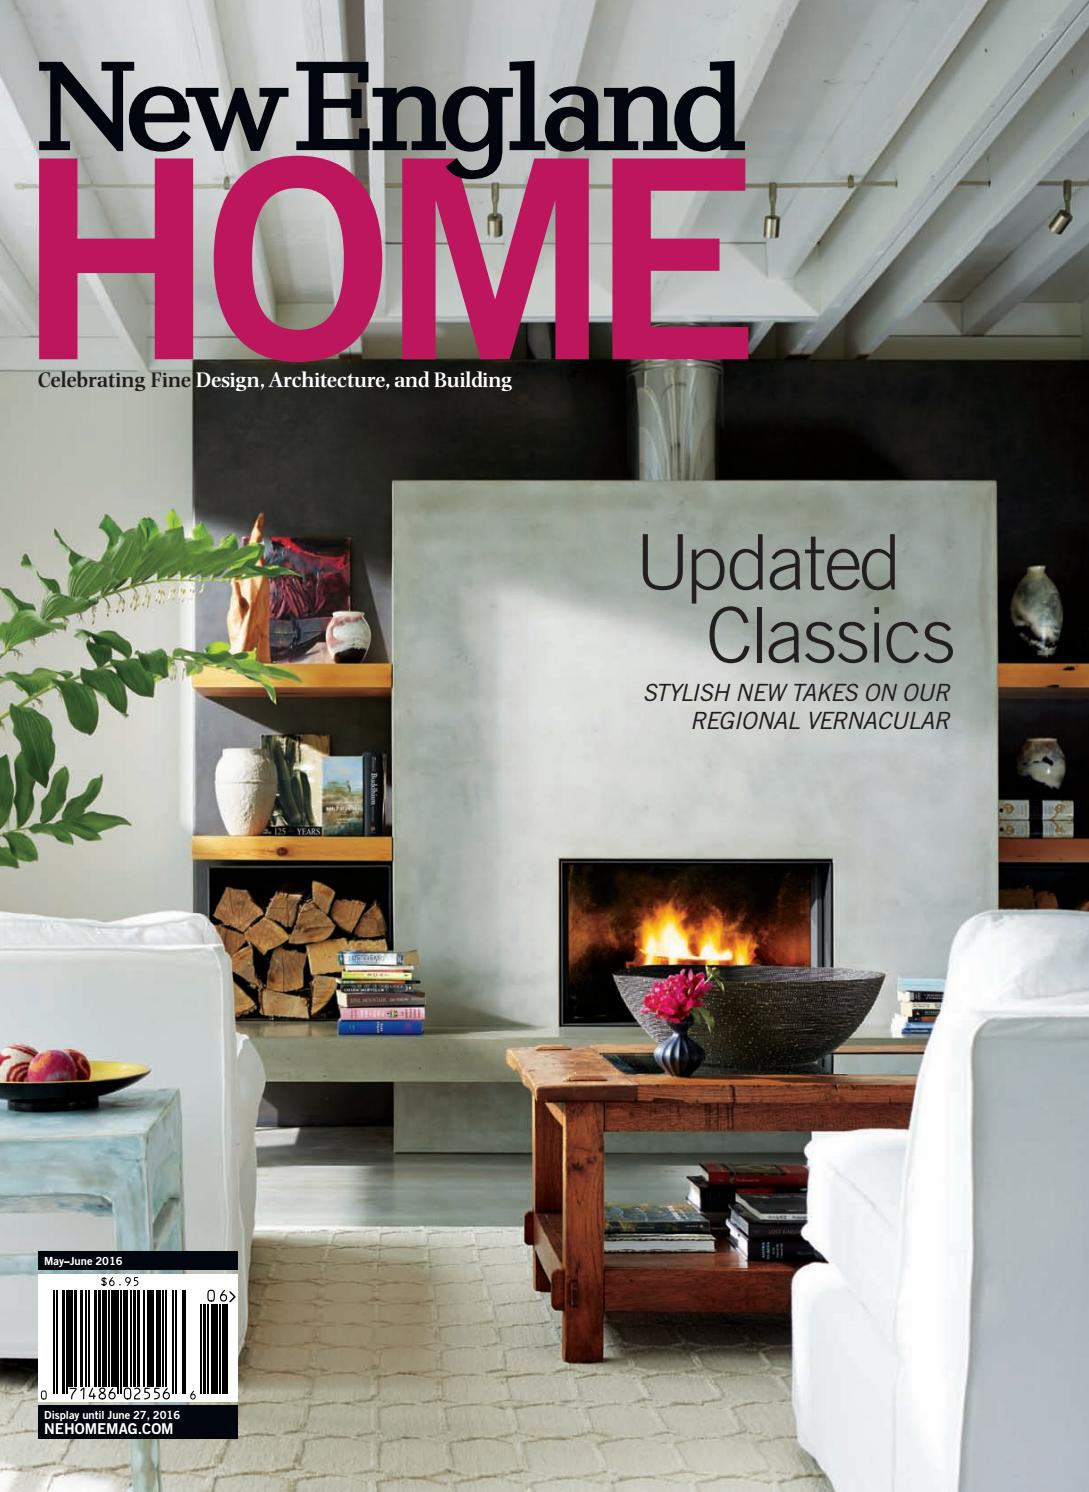 New england home may june 2016 by new england home magazine llc issuu